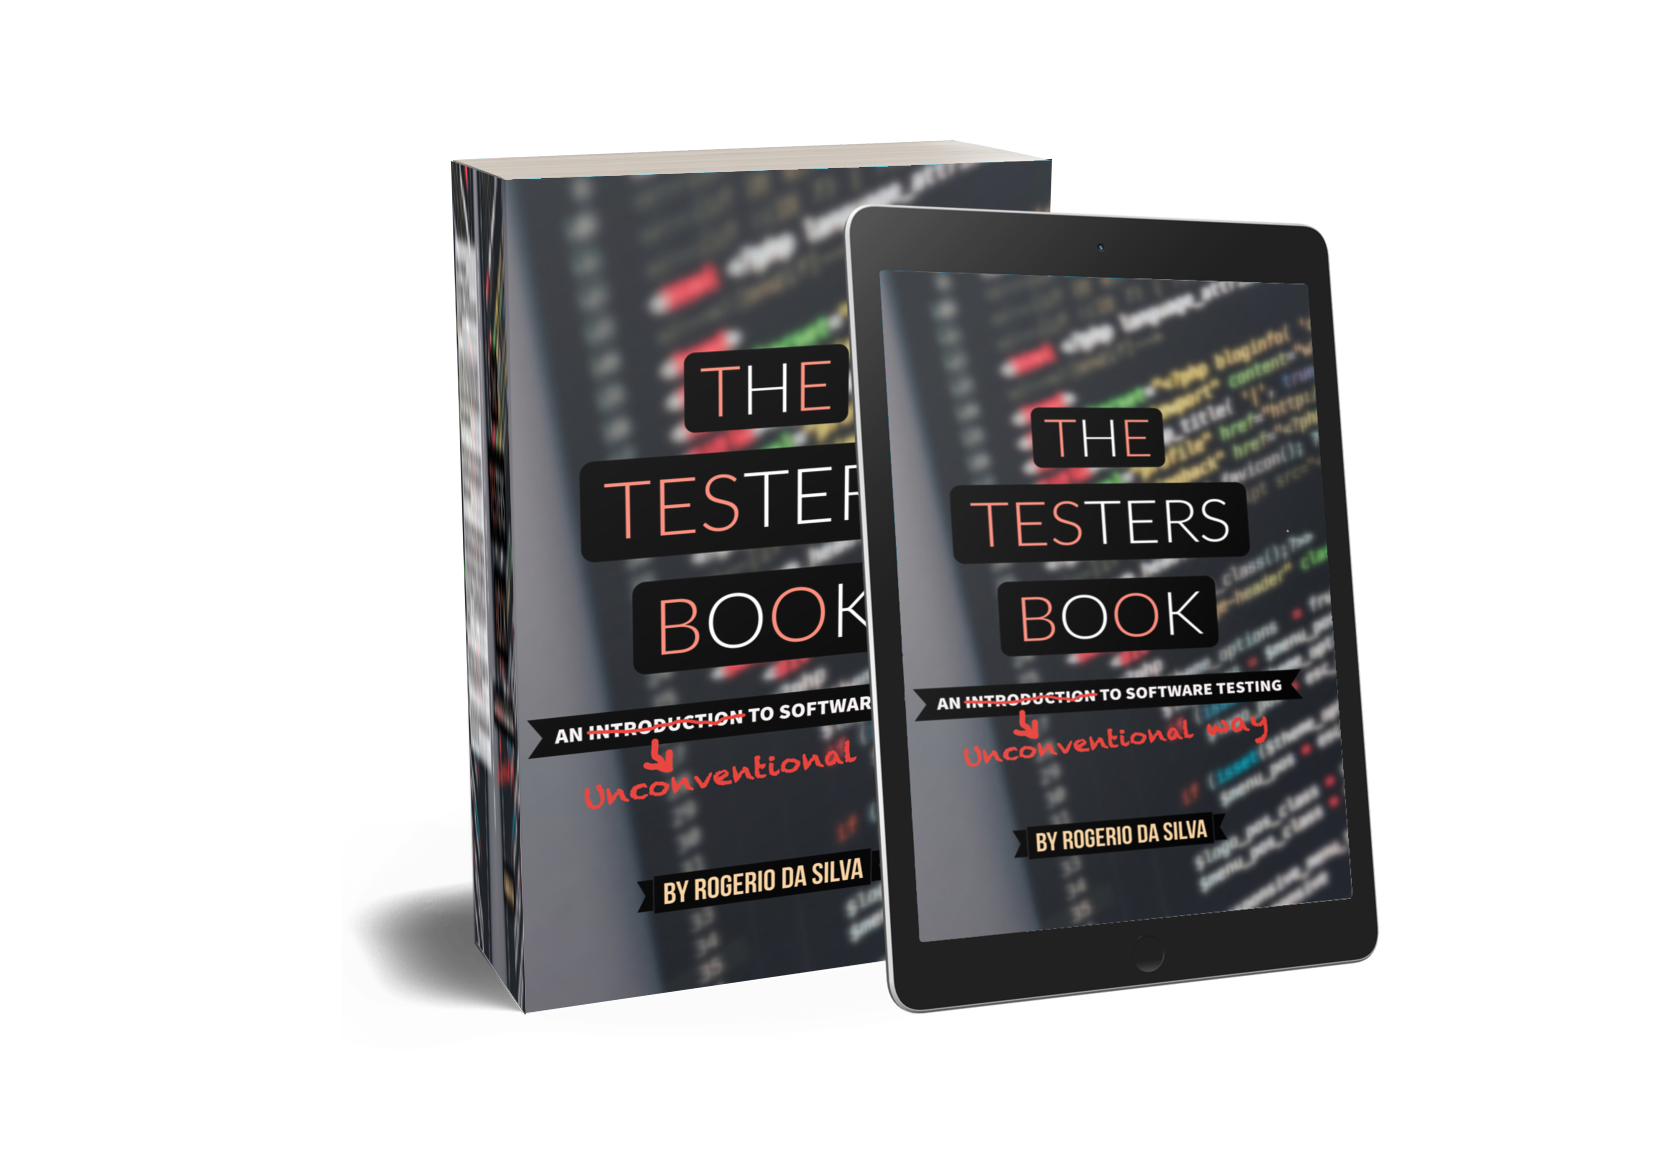 The Testers Book (Revised Edition) An Unconventional Way to Software Testing by Rogerio da Silva